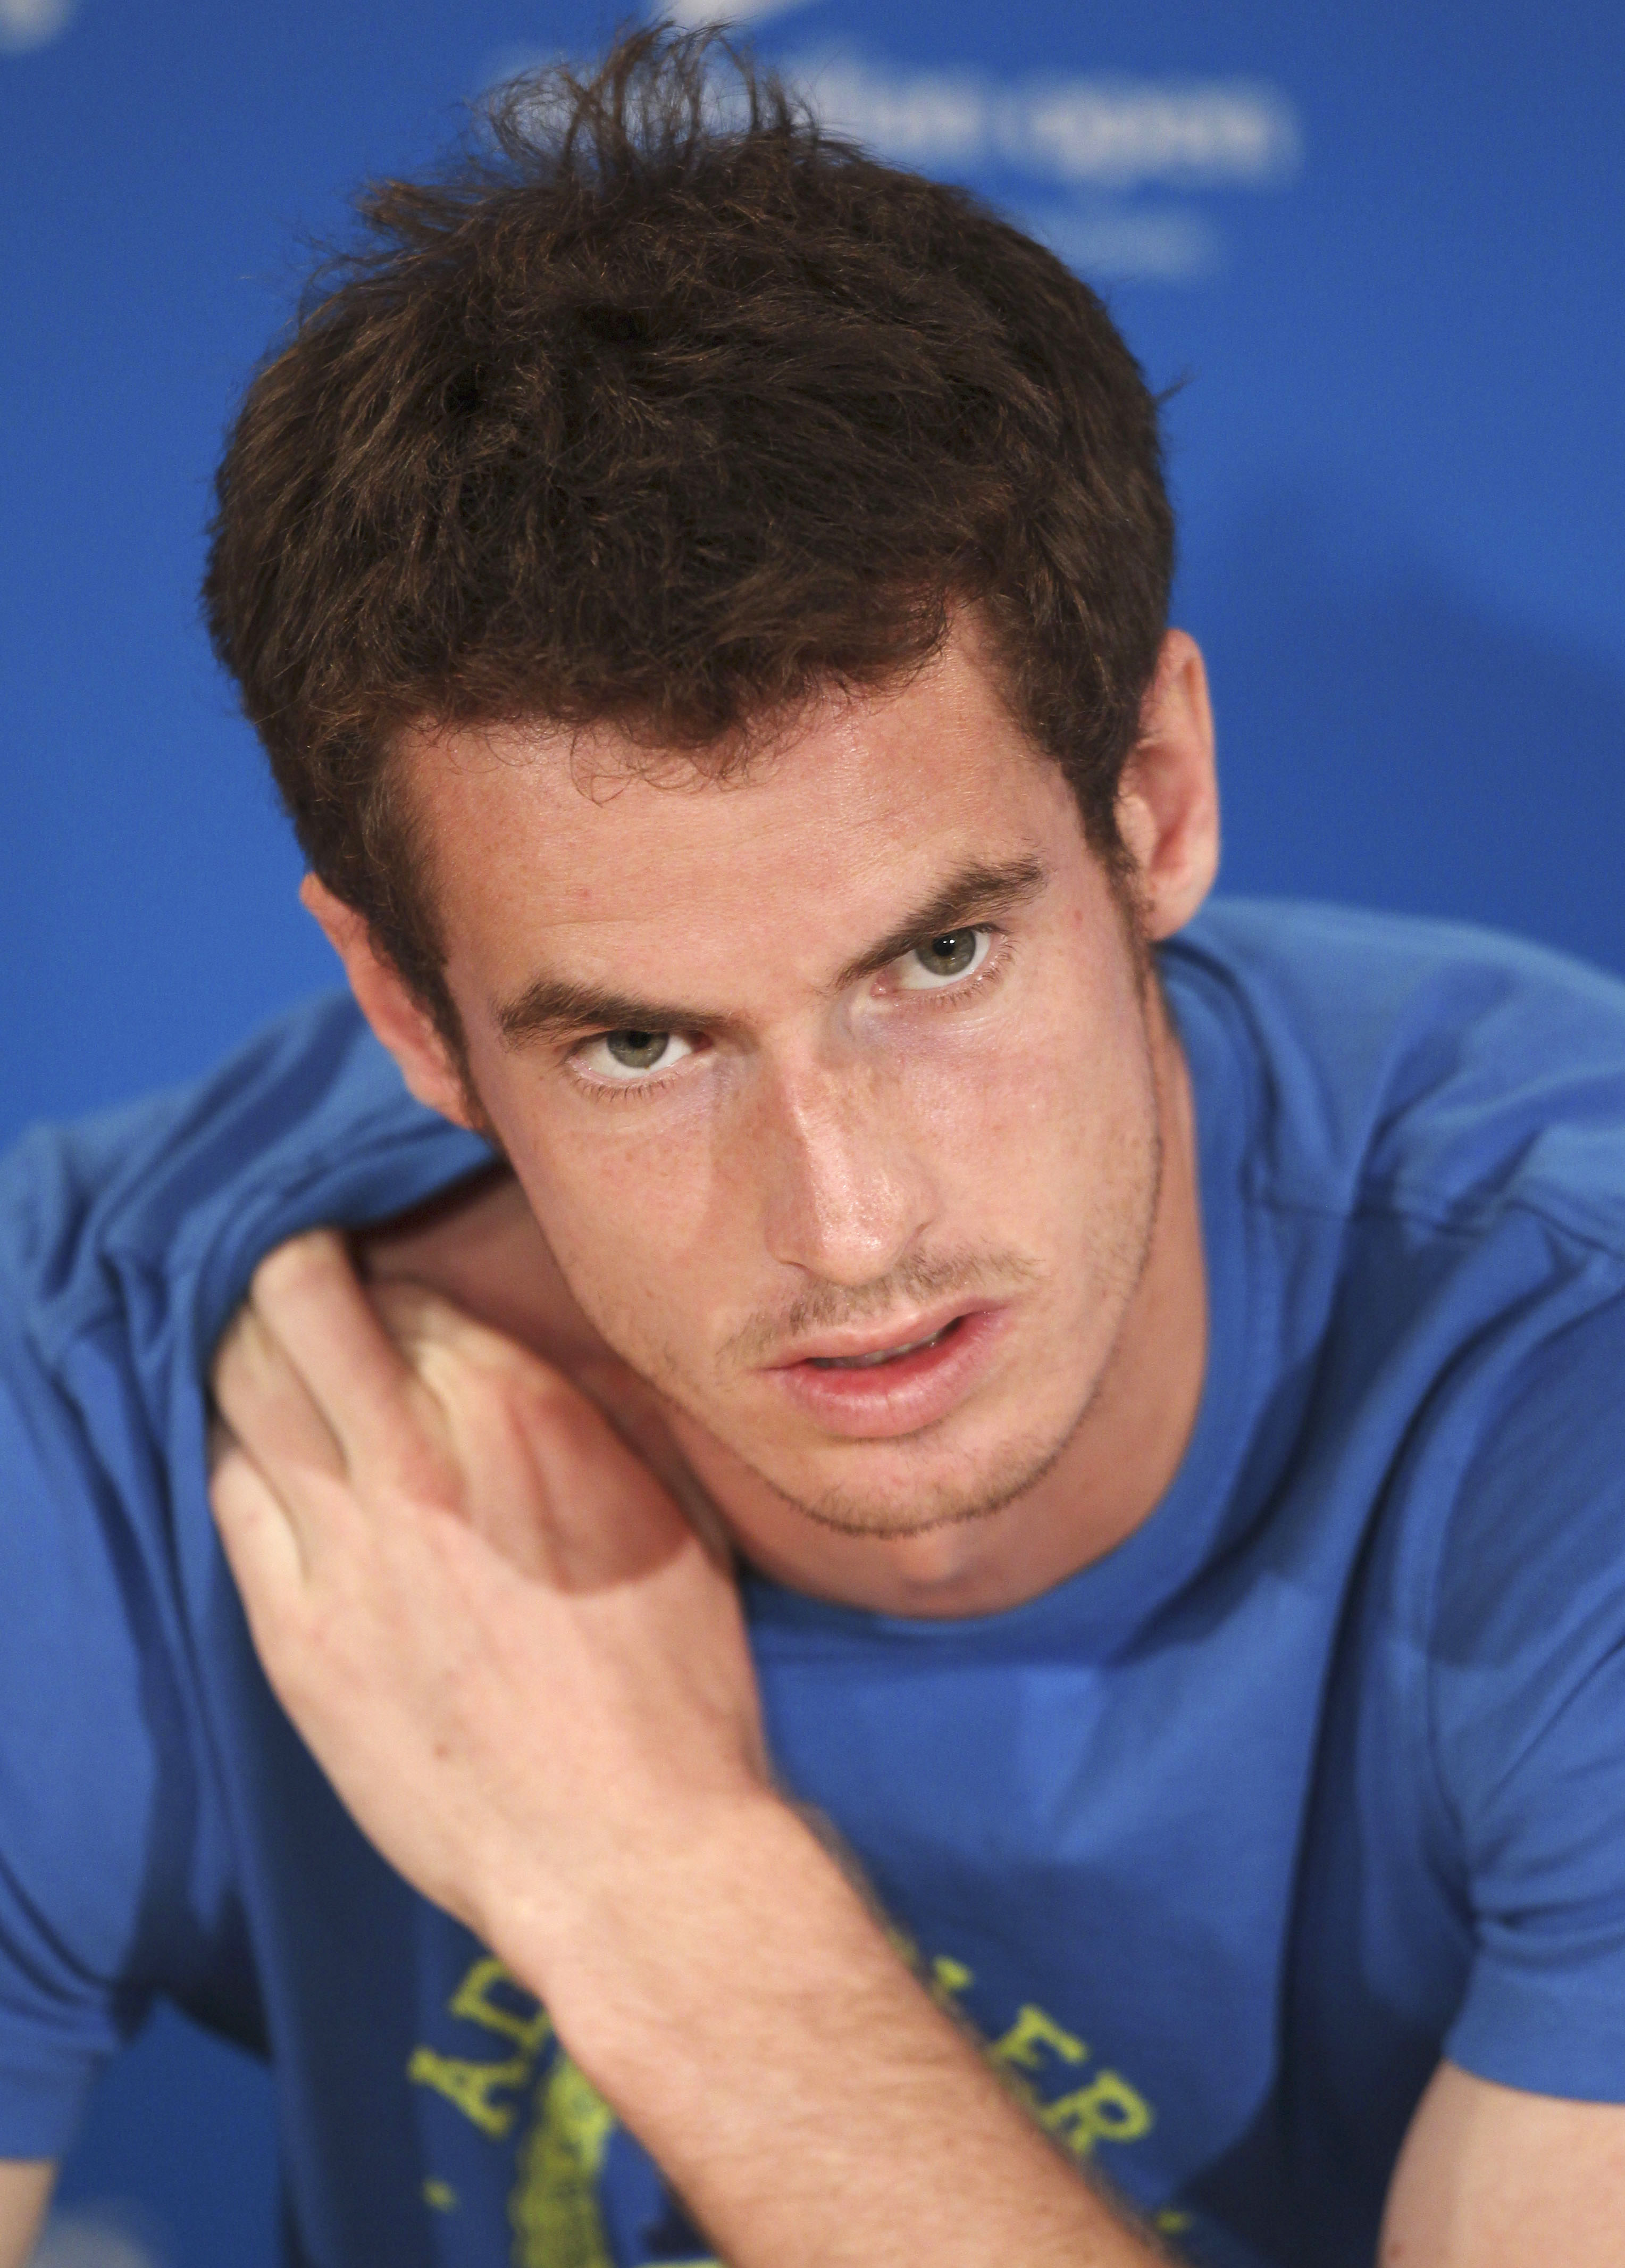 Andy Murray of Britain speaks during a press conference at the Australian Open tennis championship in Melbourne, Australia yesterday.